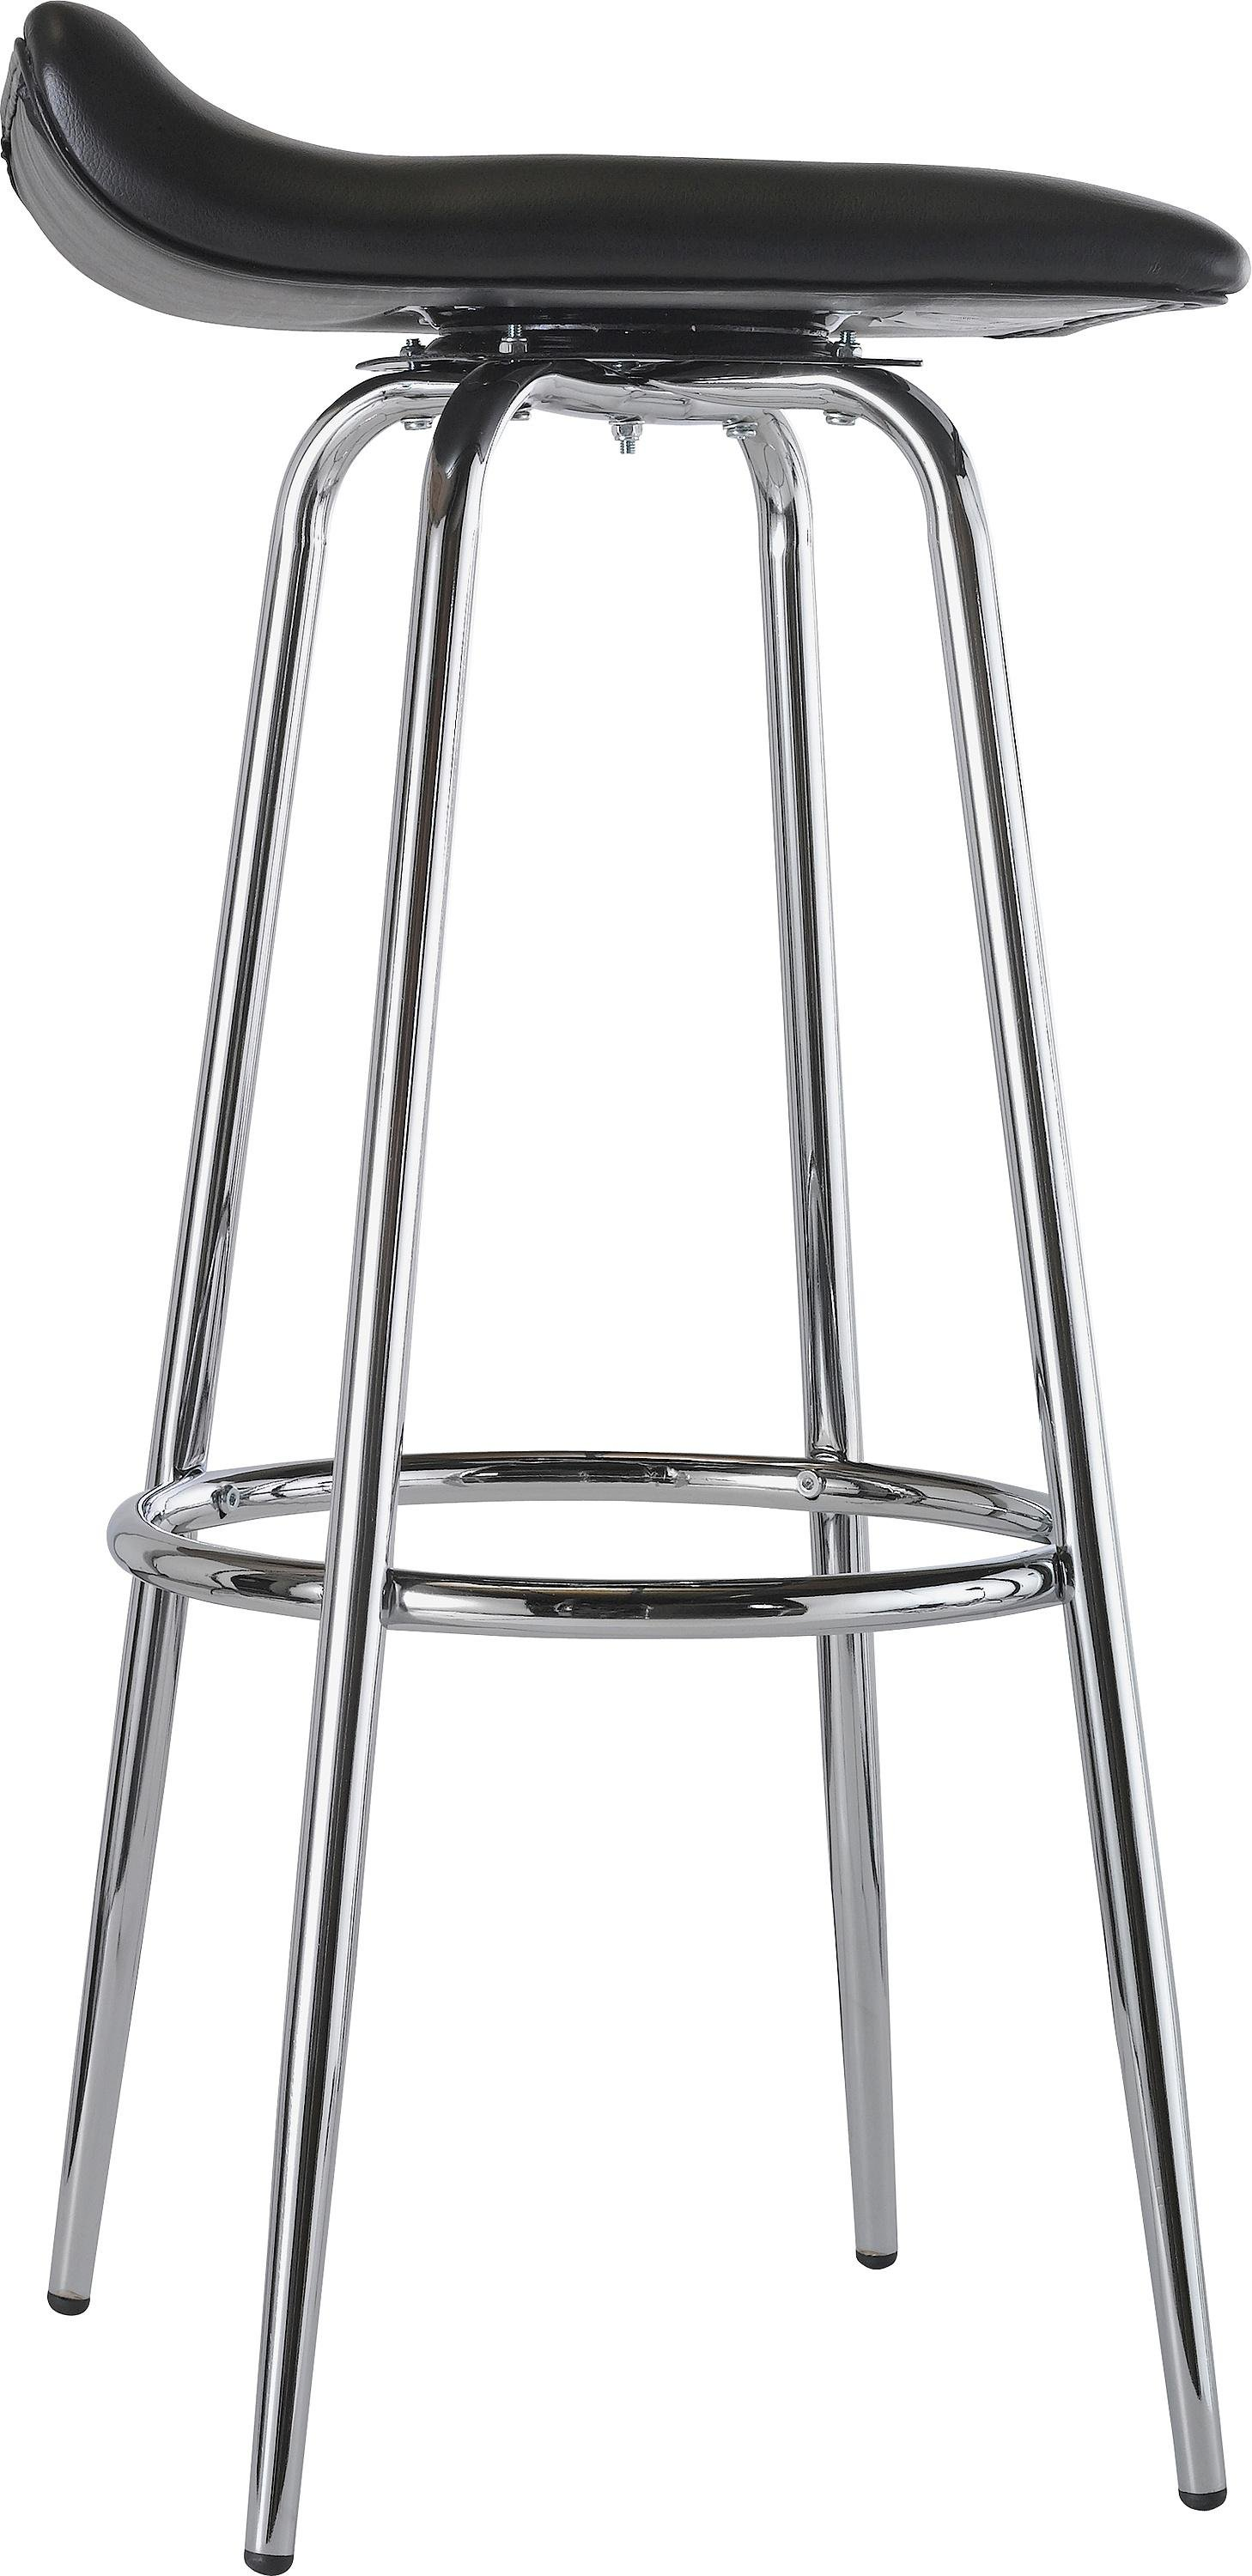 kitchen chairs argos mainstays xl zero gravity chair with side table and canopy buy home pair of black chrome swivel head bar stools at argos.co.uk - your online shop for ...